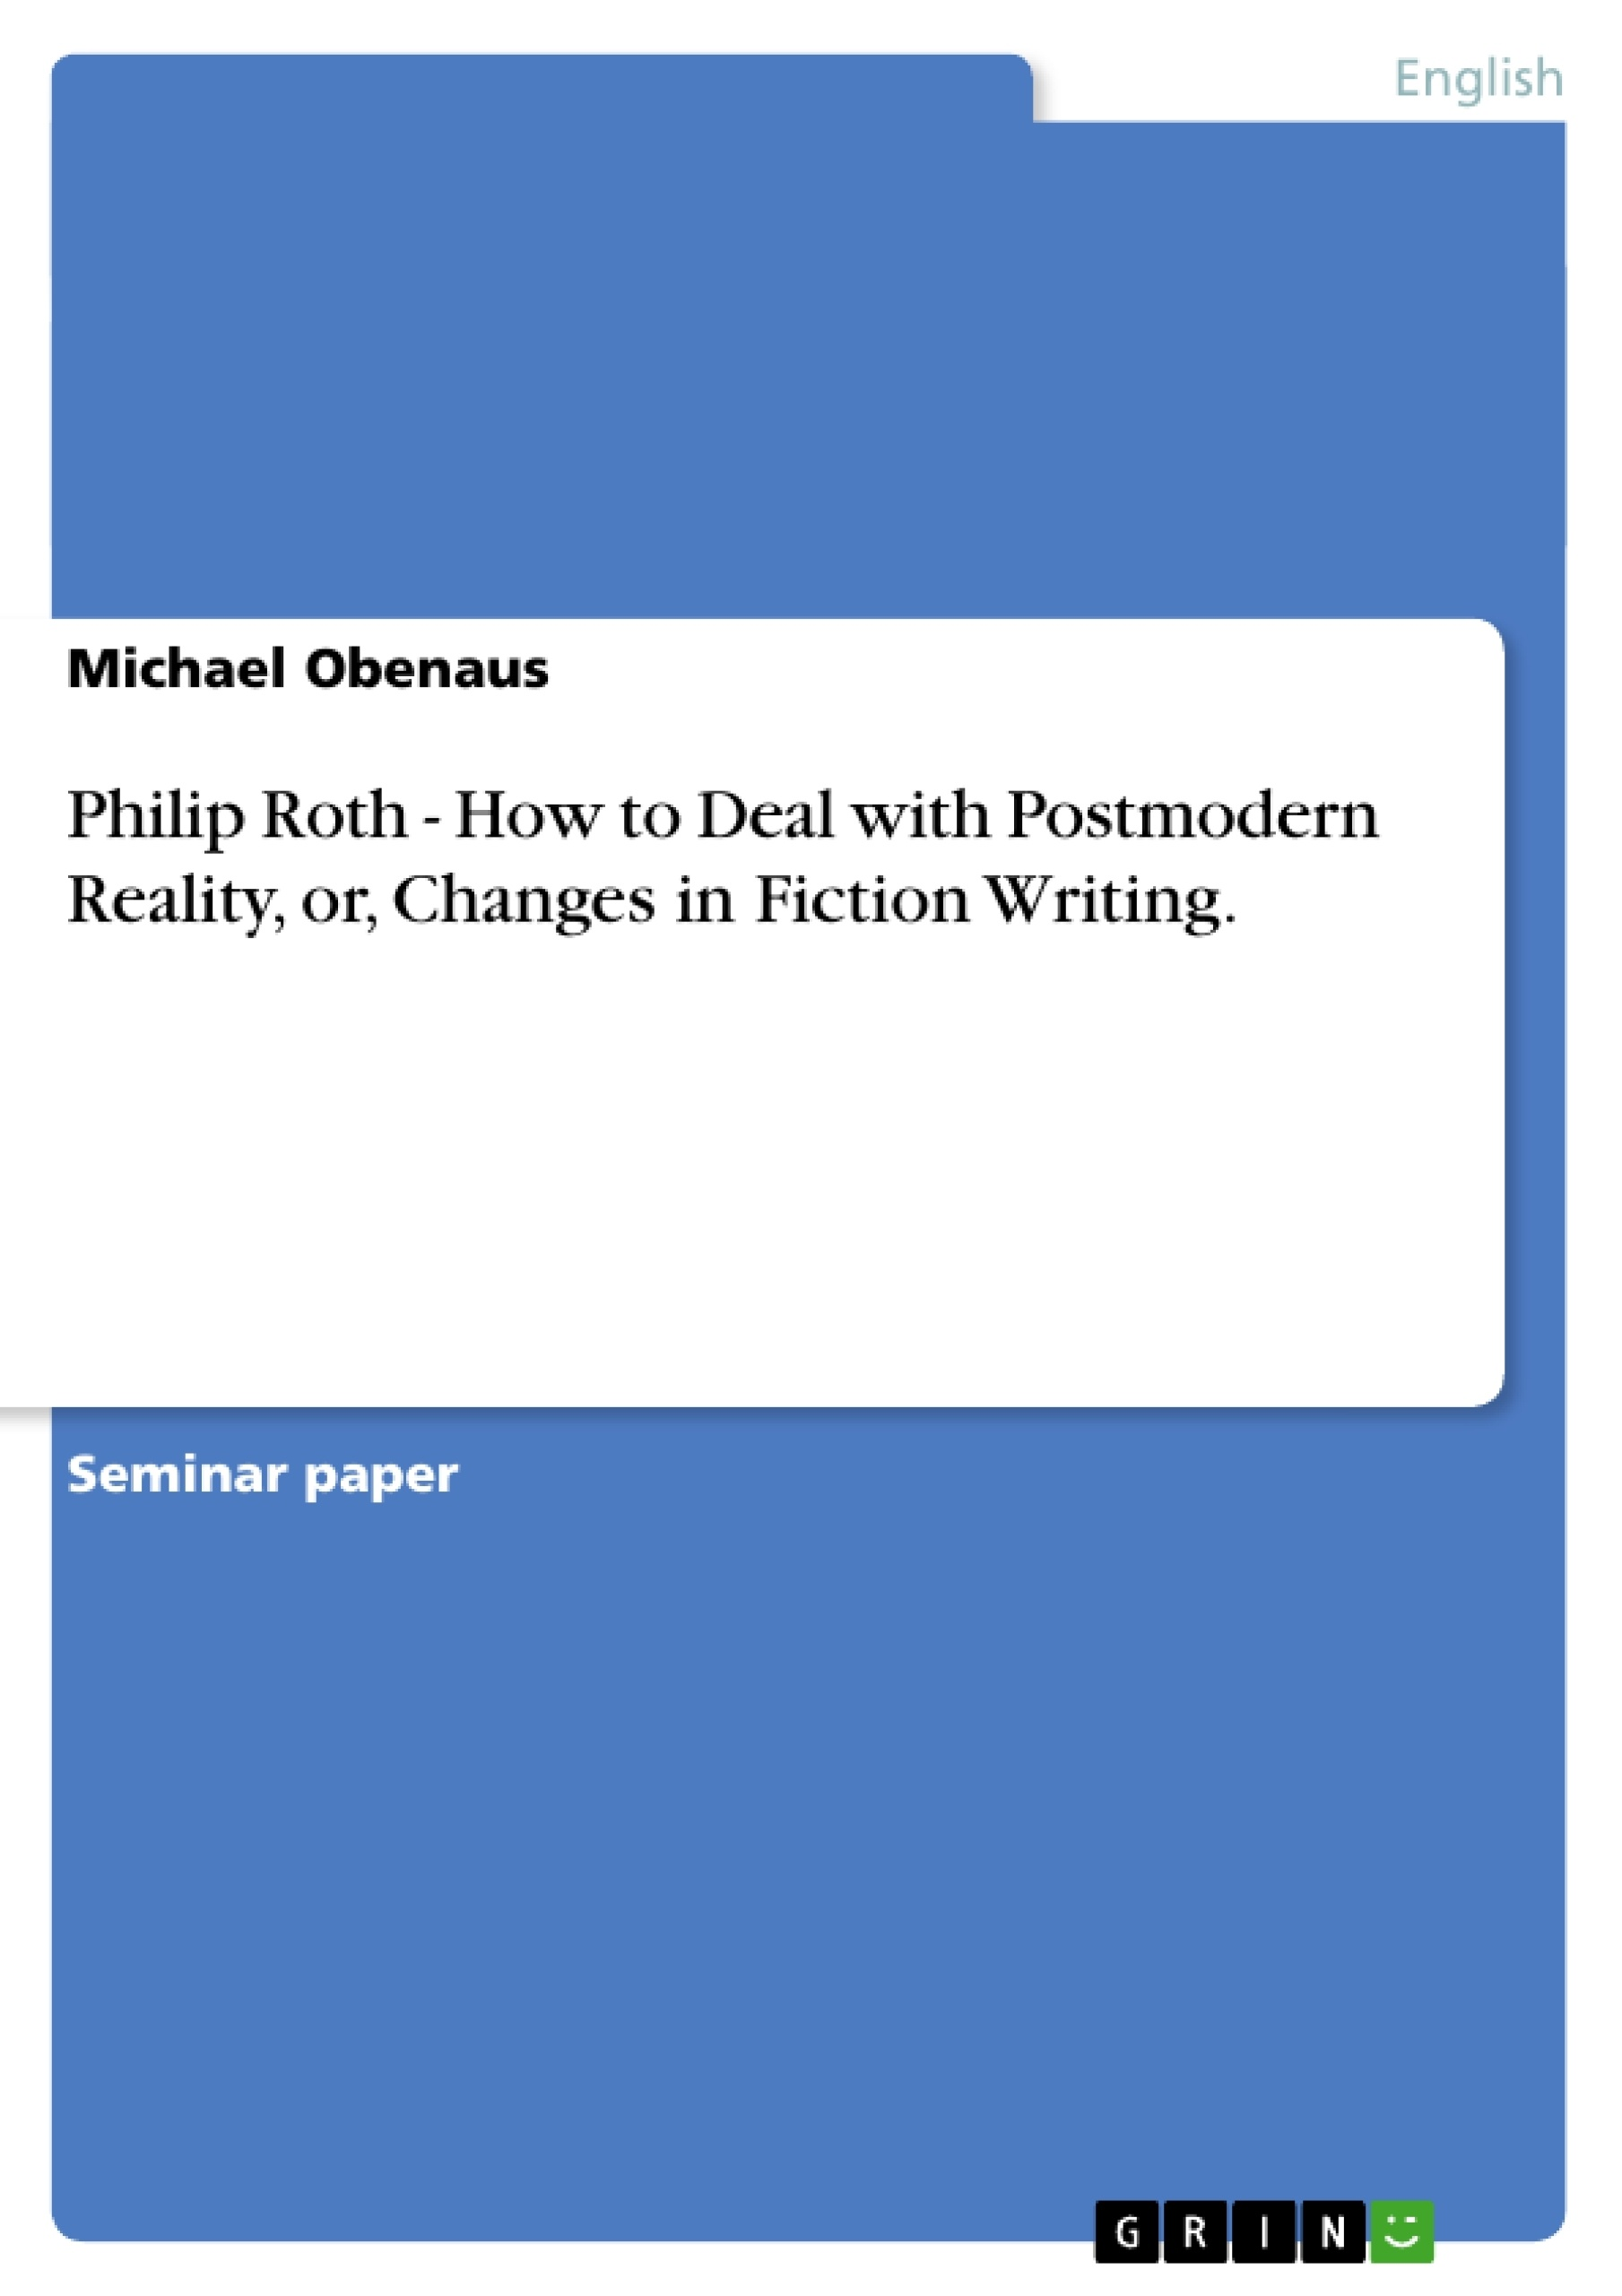 Title: Philip Roth - How to Deal with Postmodern Reality, or, Changes in Fiction Writing.